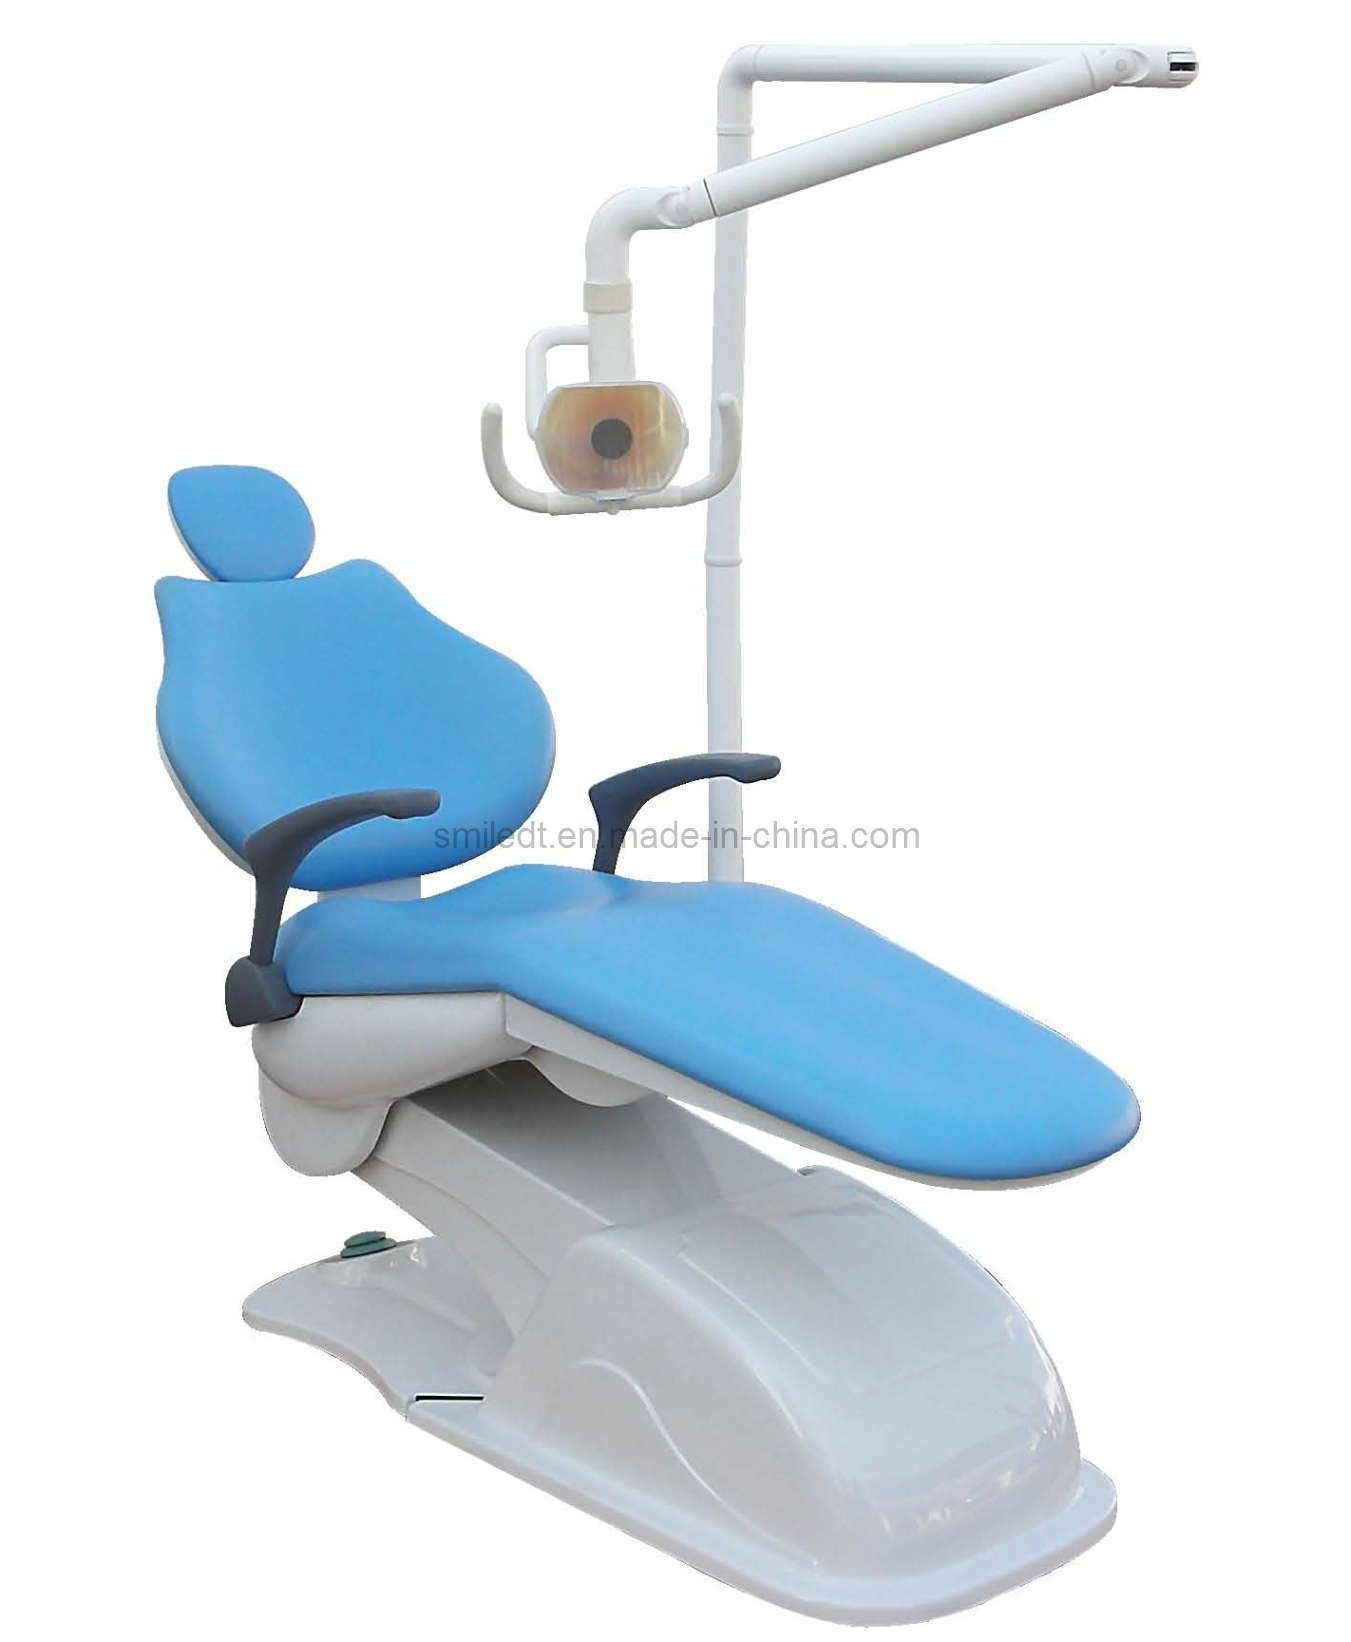 china ce approved dental chair with light photos pictures made in